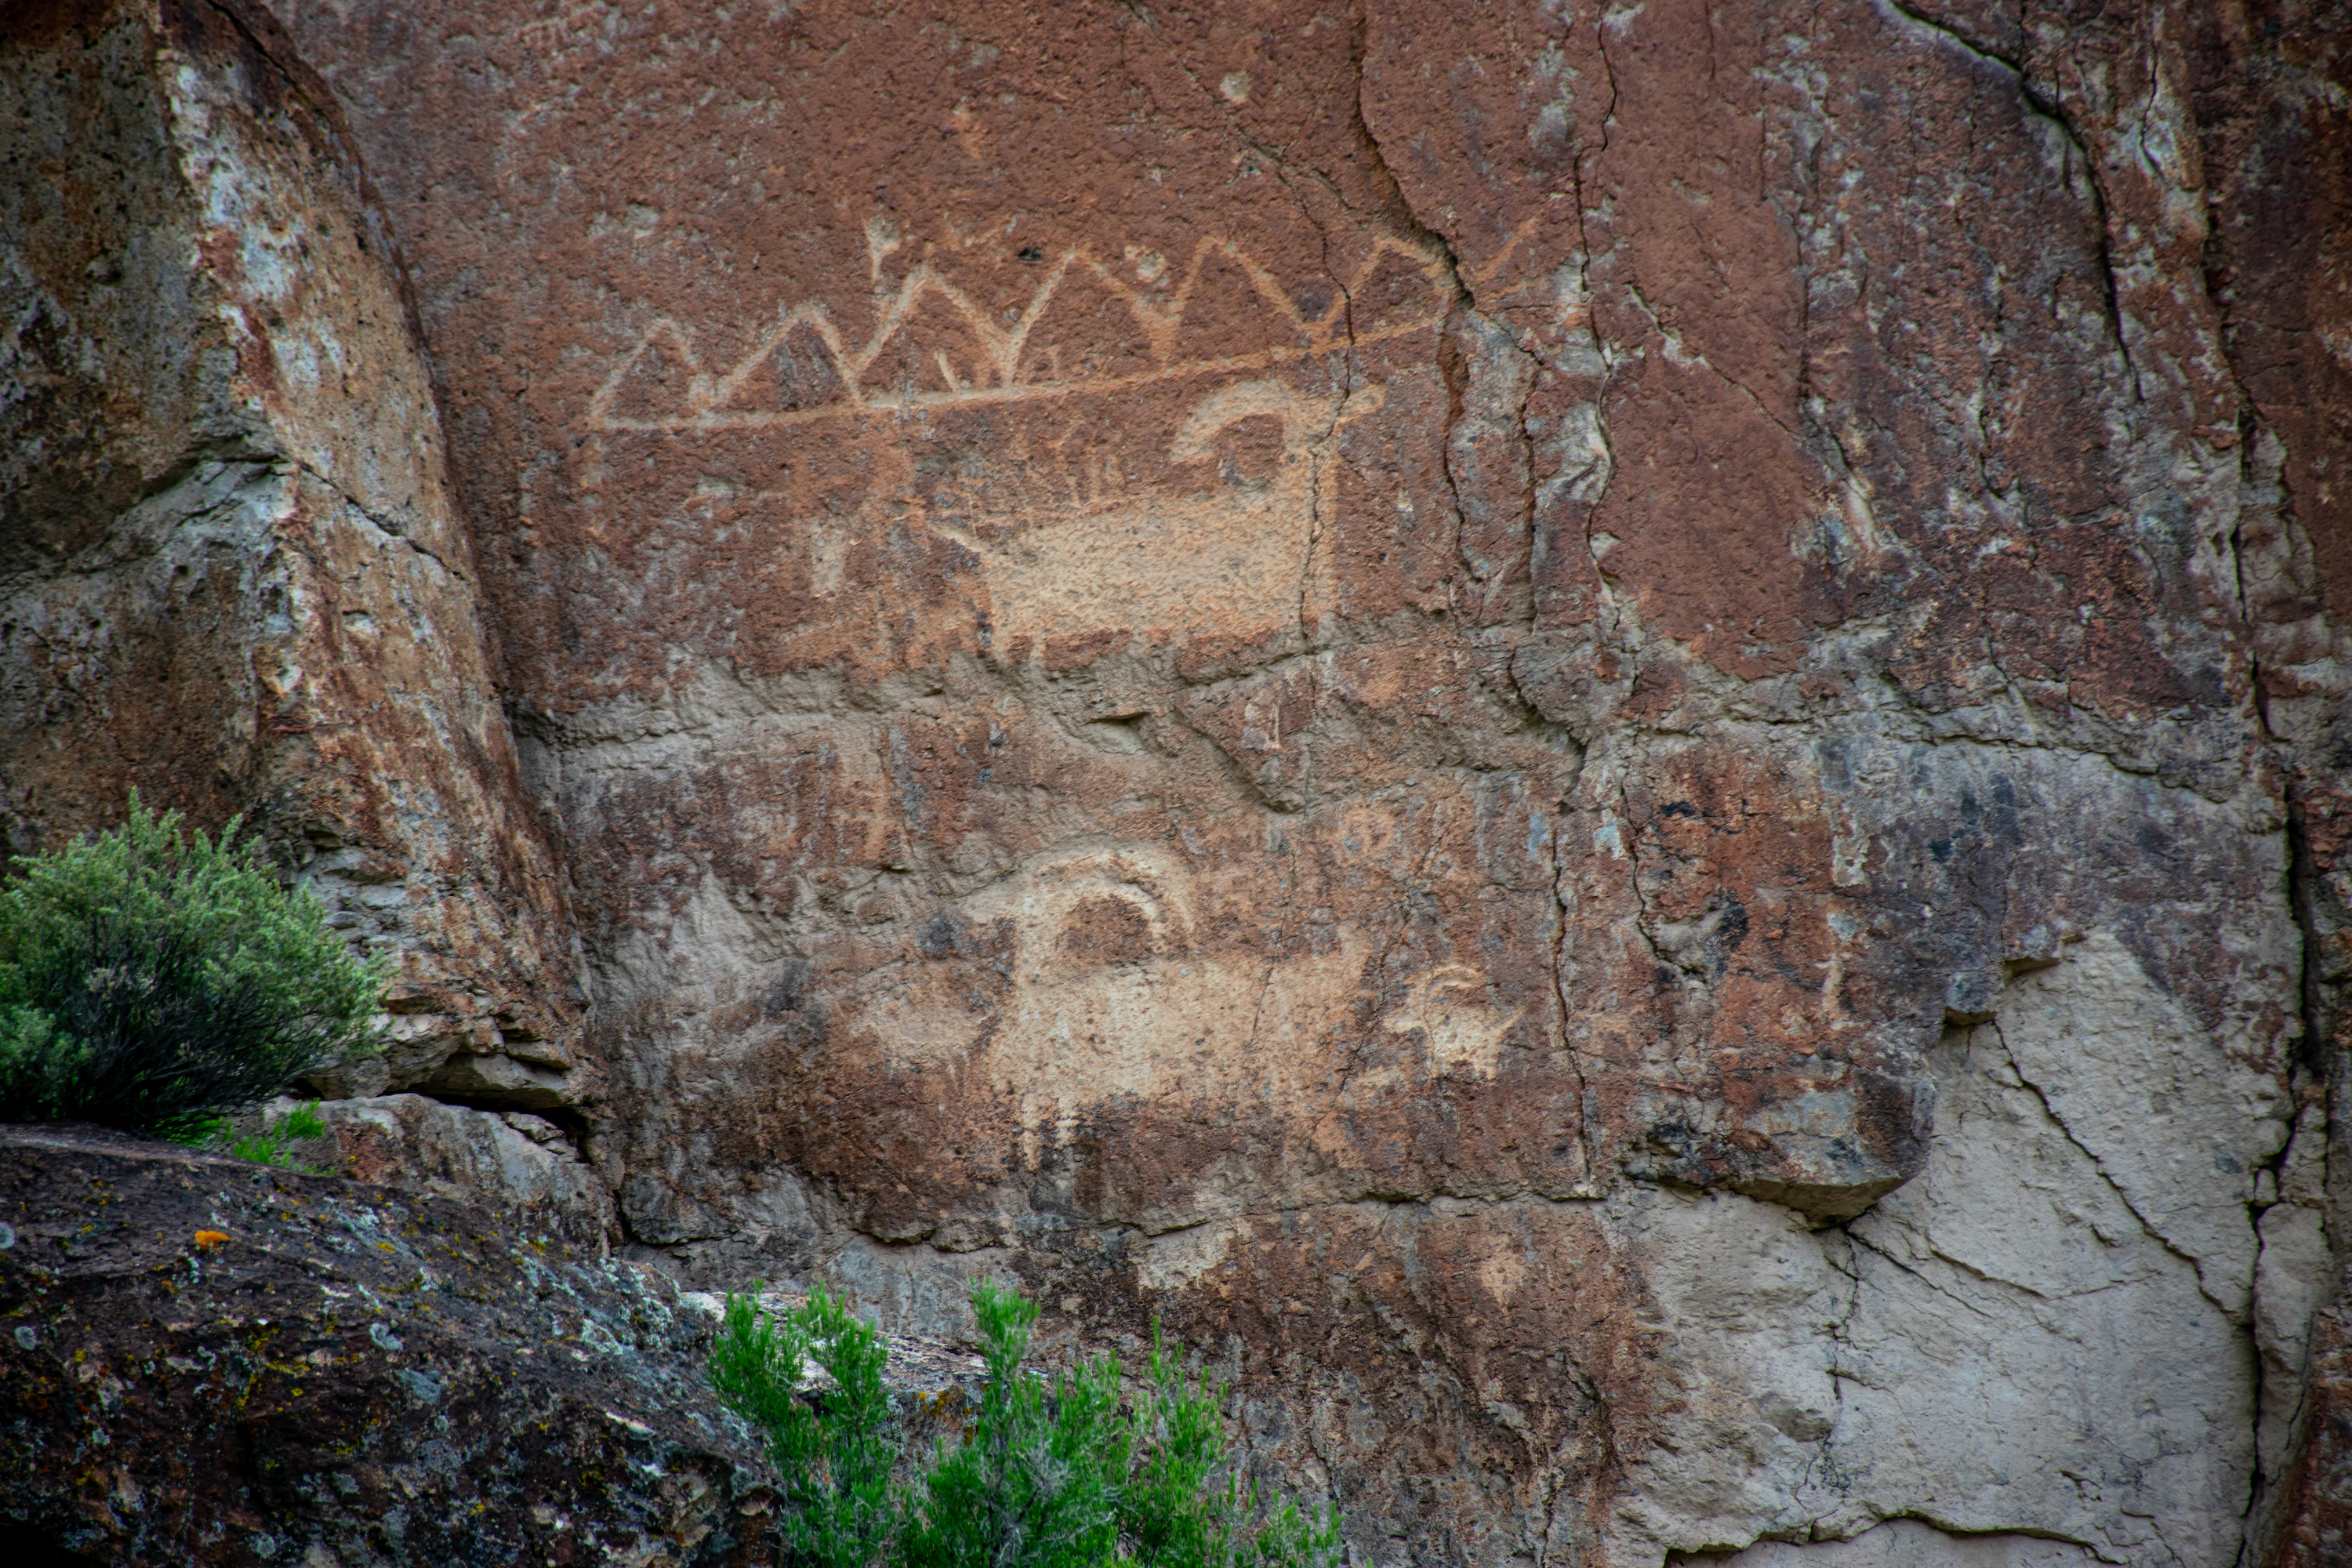 Two antelope drawings on a rock wall